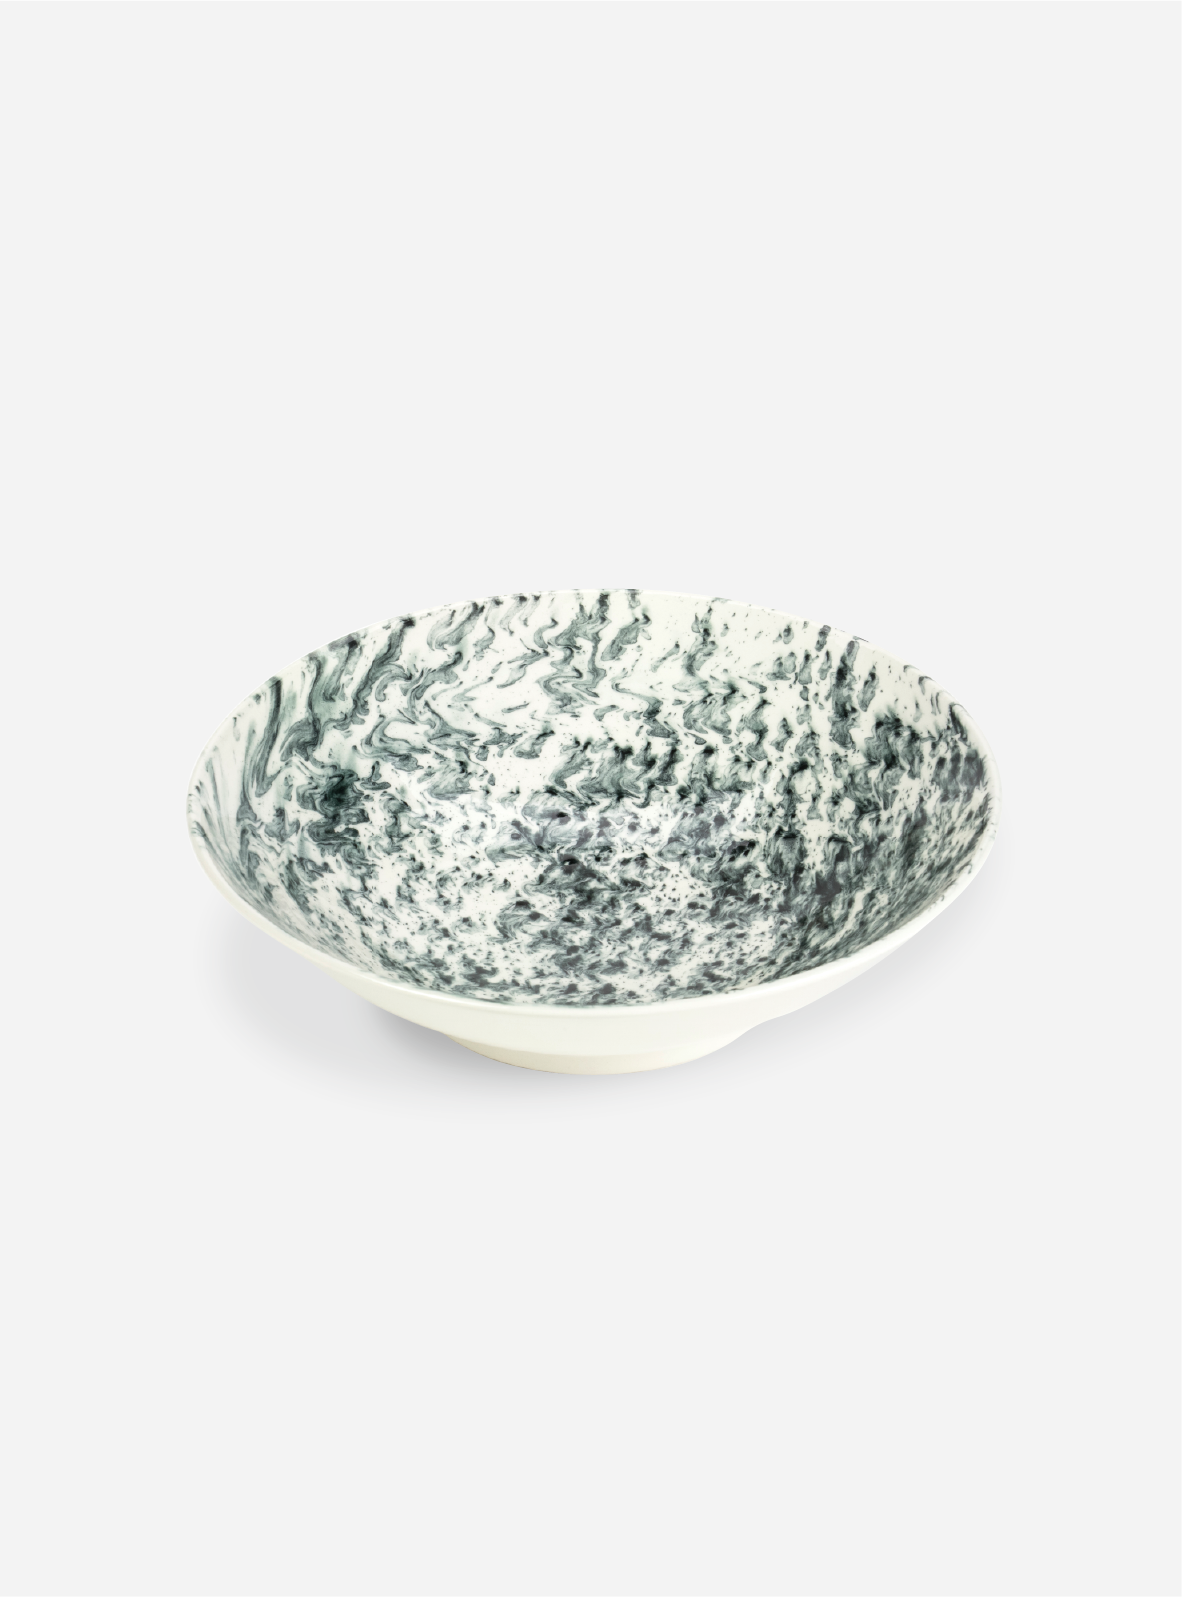 F_medium serving bowl_final copy